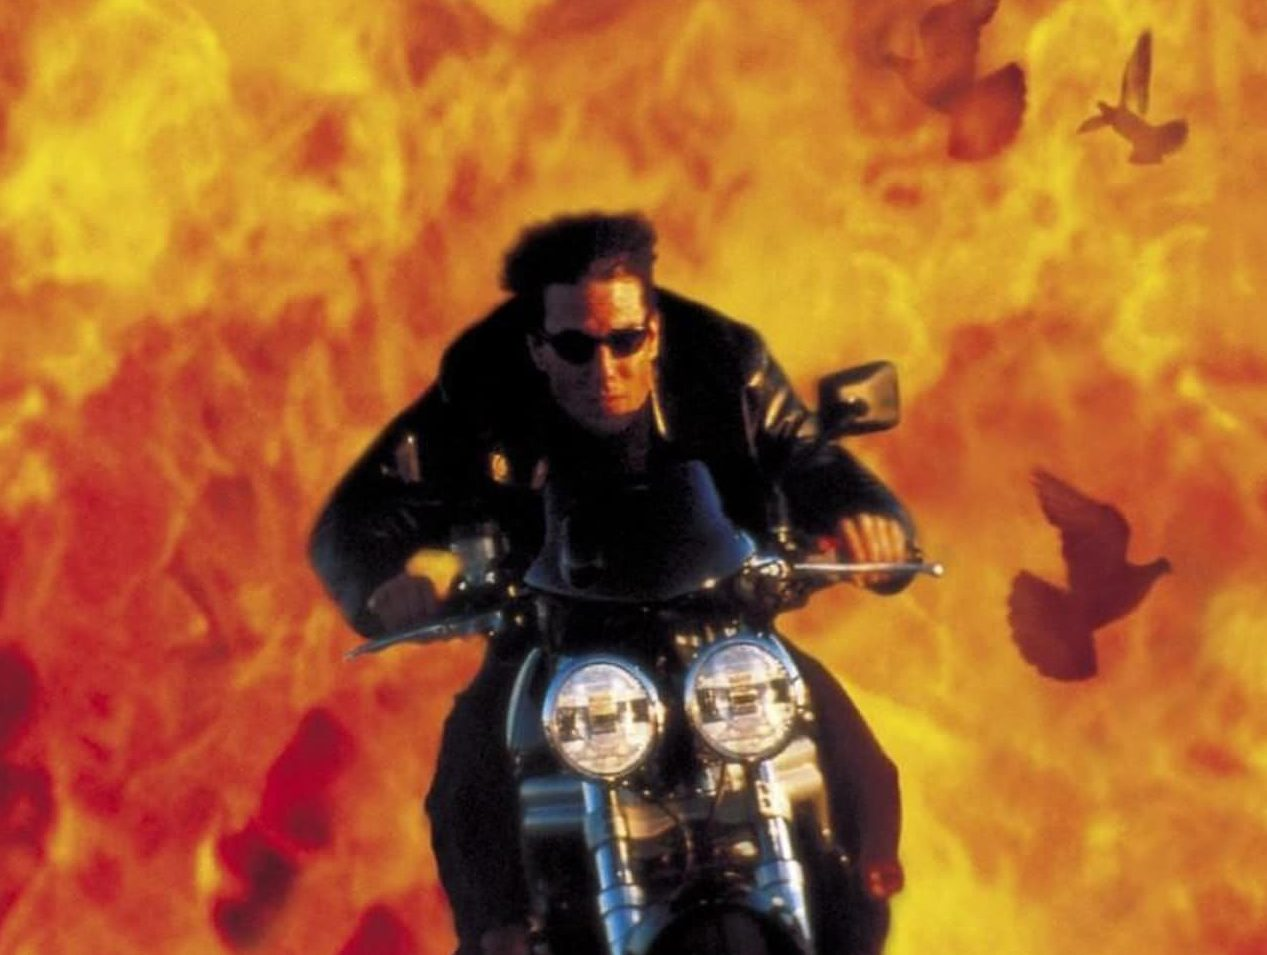 mission impossible ii 1594044155 e1618239393404 10 Explosive Facts About Jean-Claude Van Damme's Hard Target